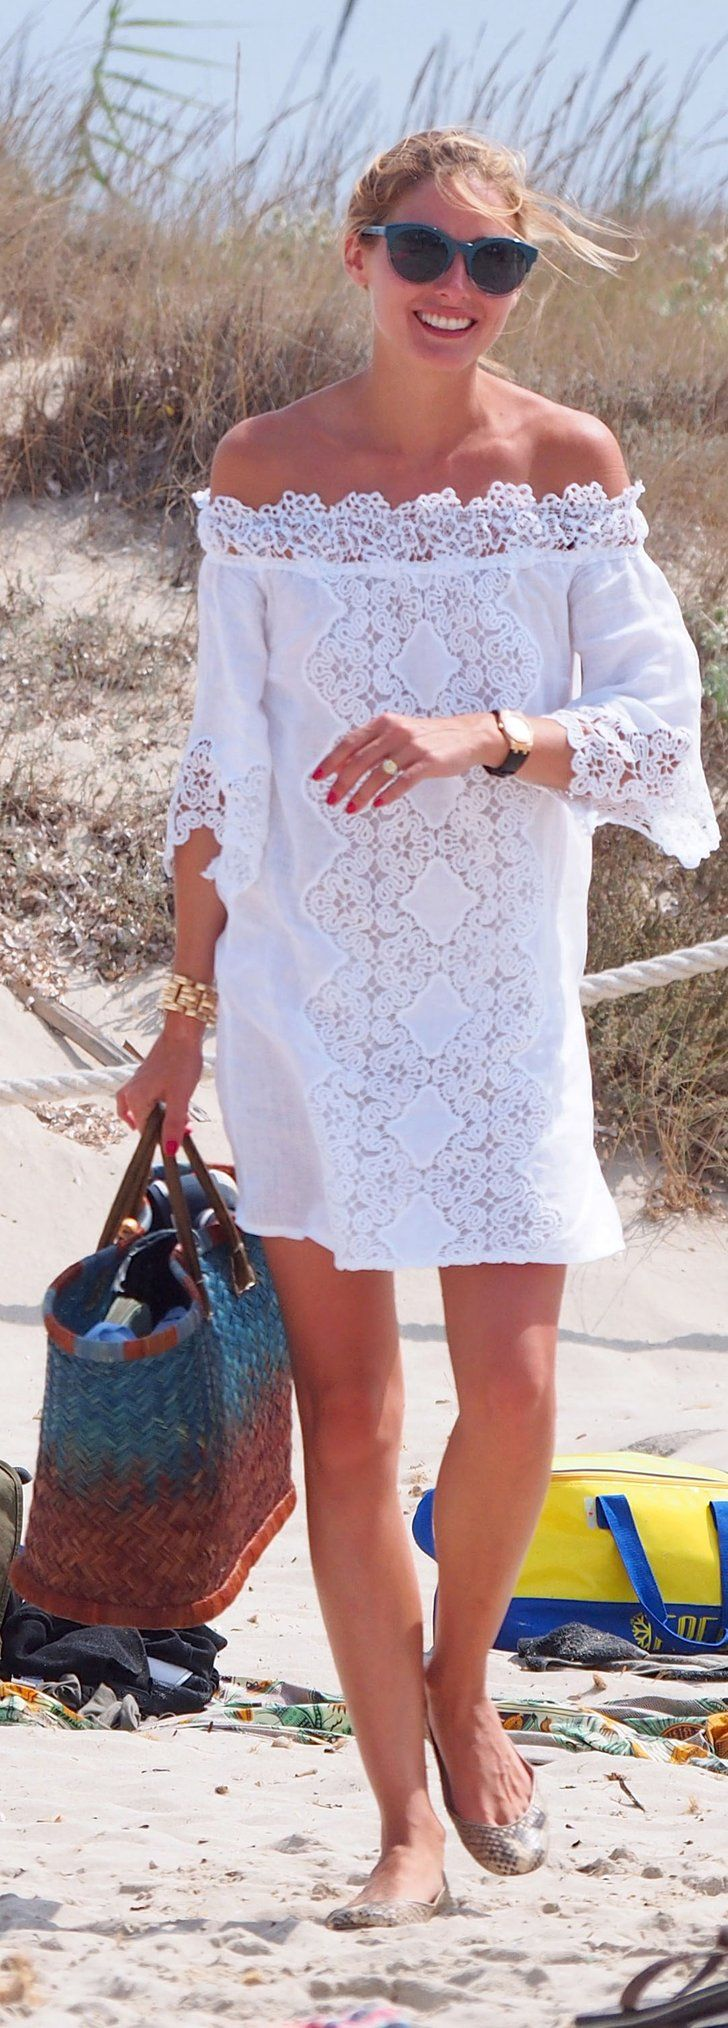 Olivia Palermo Just Pulled the Smartest Styling Trick on the Beach